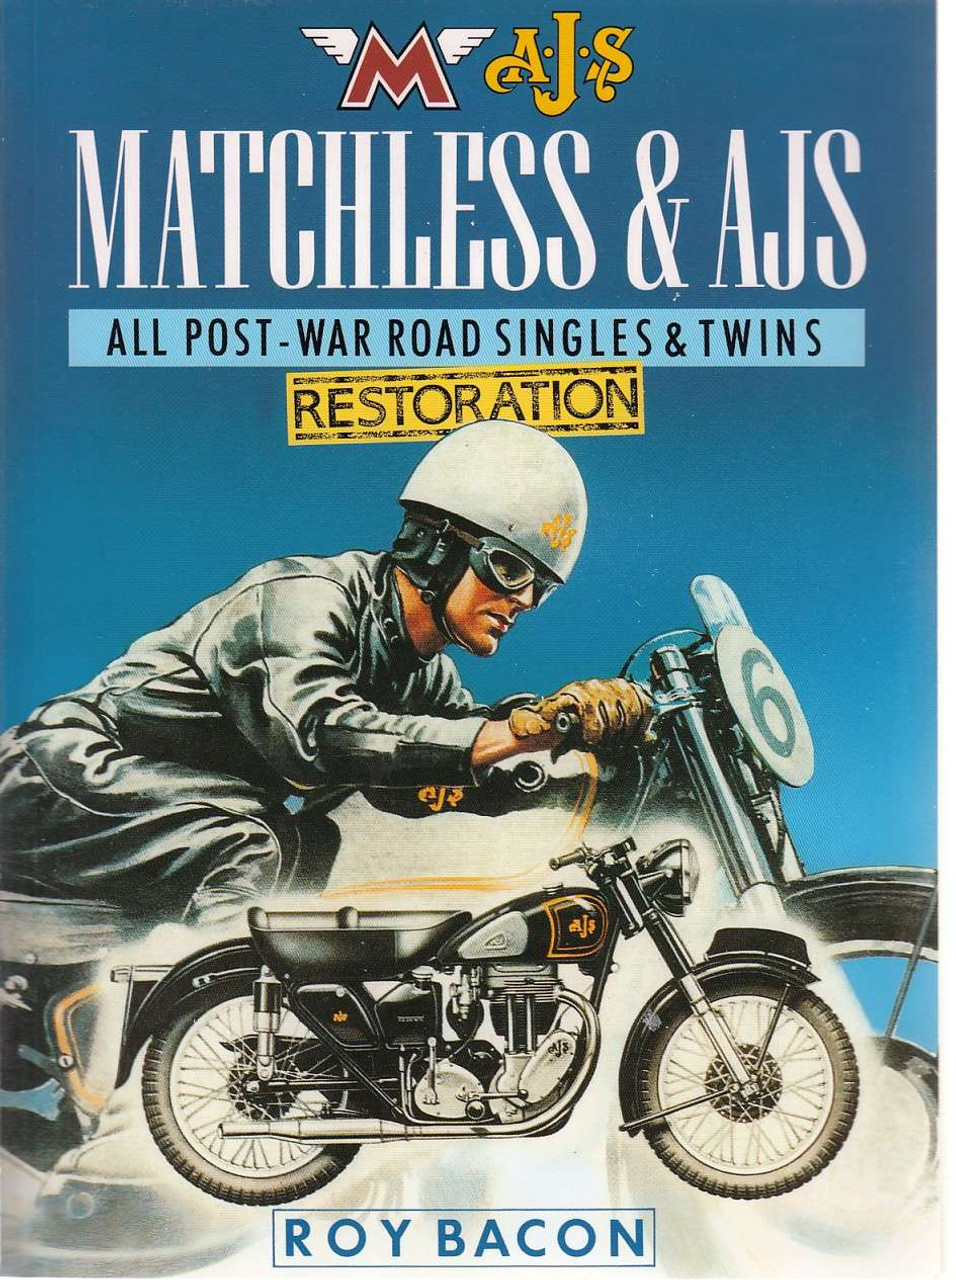 Matchless & AJS Restoration - All Post-War Road Singles & Twins - Roy Bacon